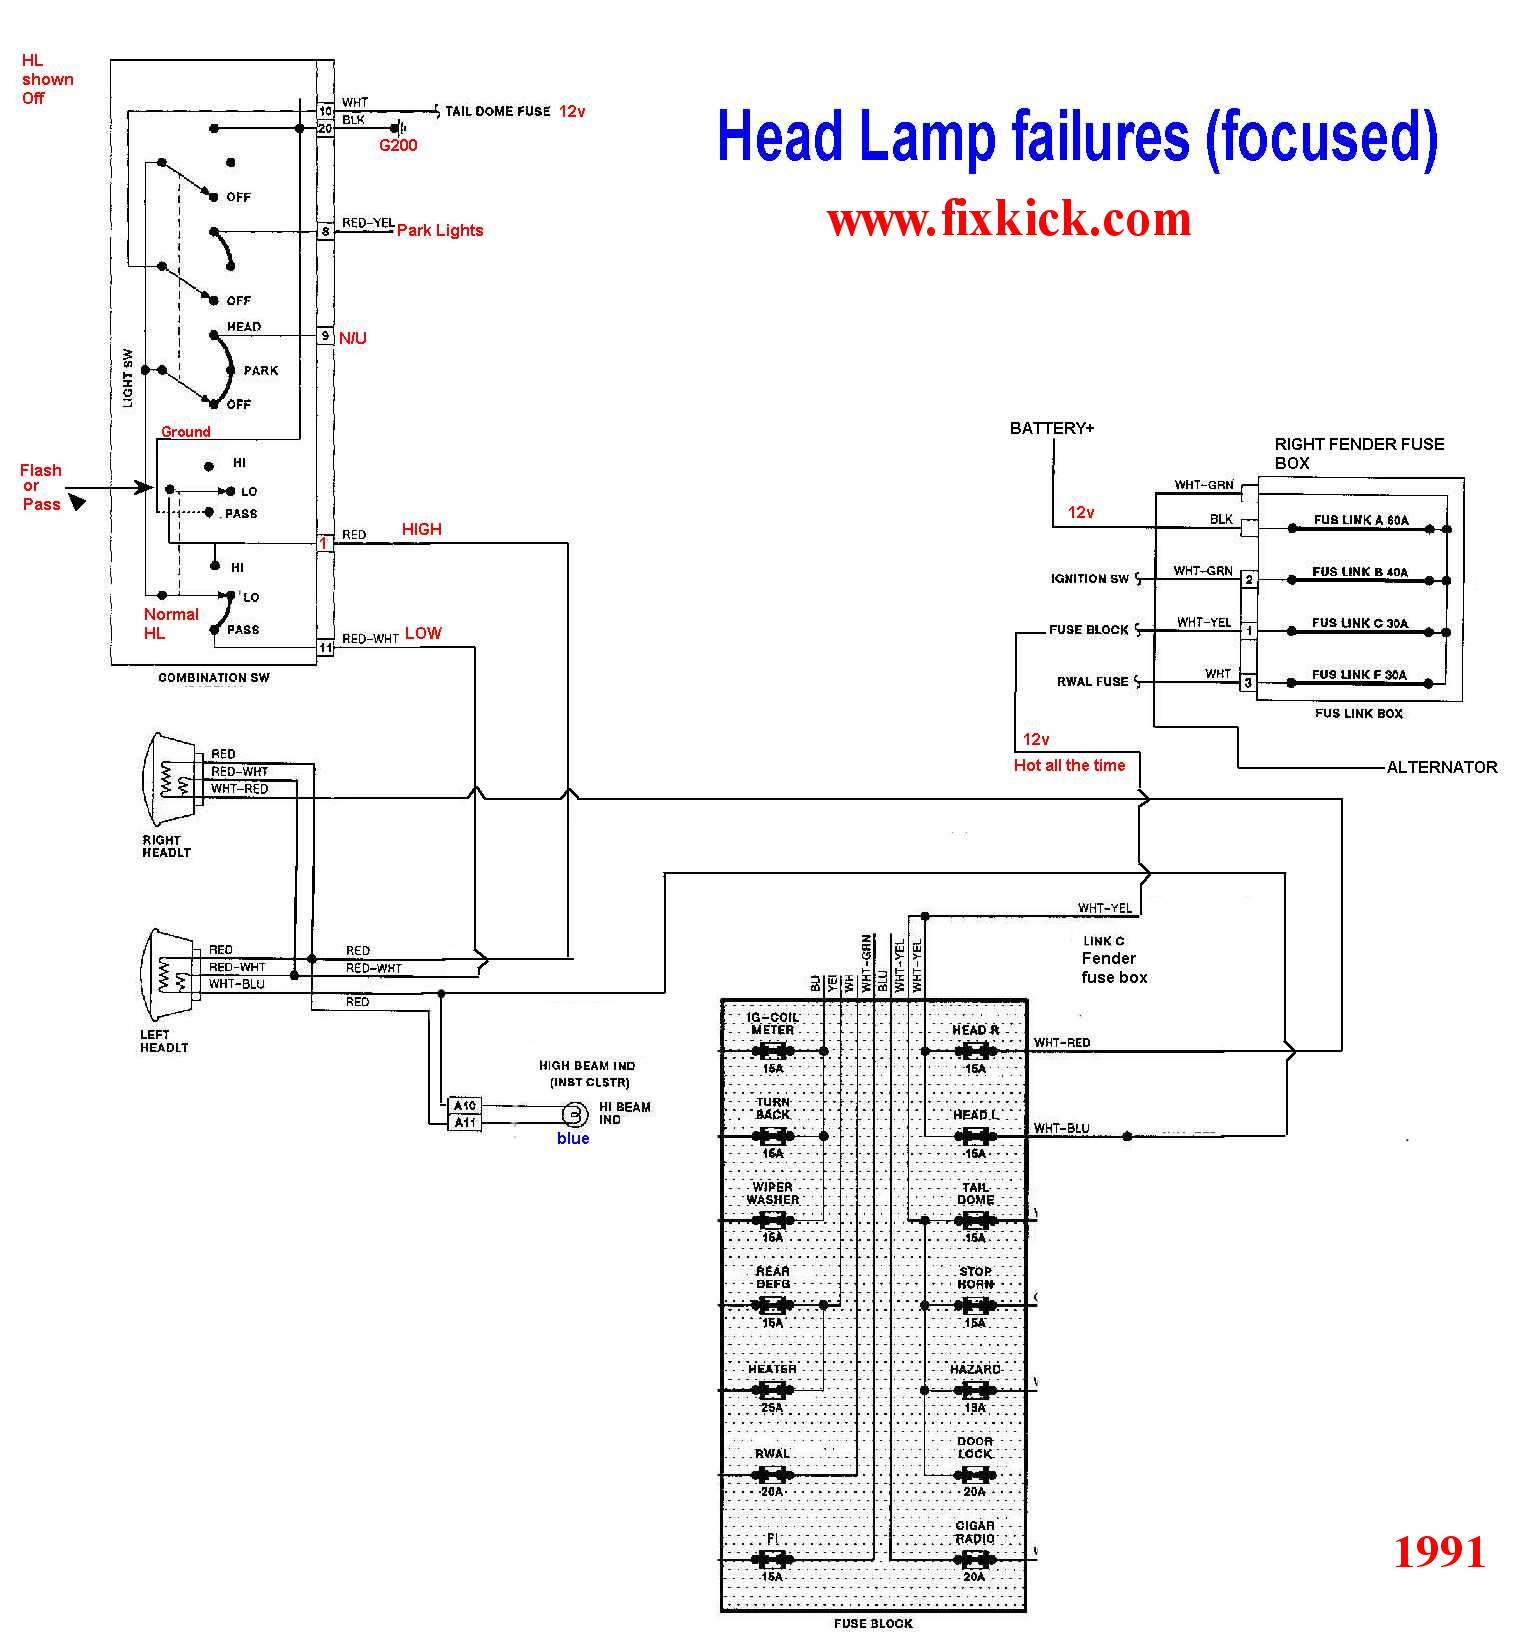 HL1A geo tracker wiring diagram 92 geo tracker wiring diagram \u2022 free 1988 suzuki samurai radio wiring diagram at n-0.co